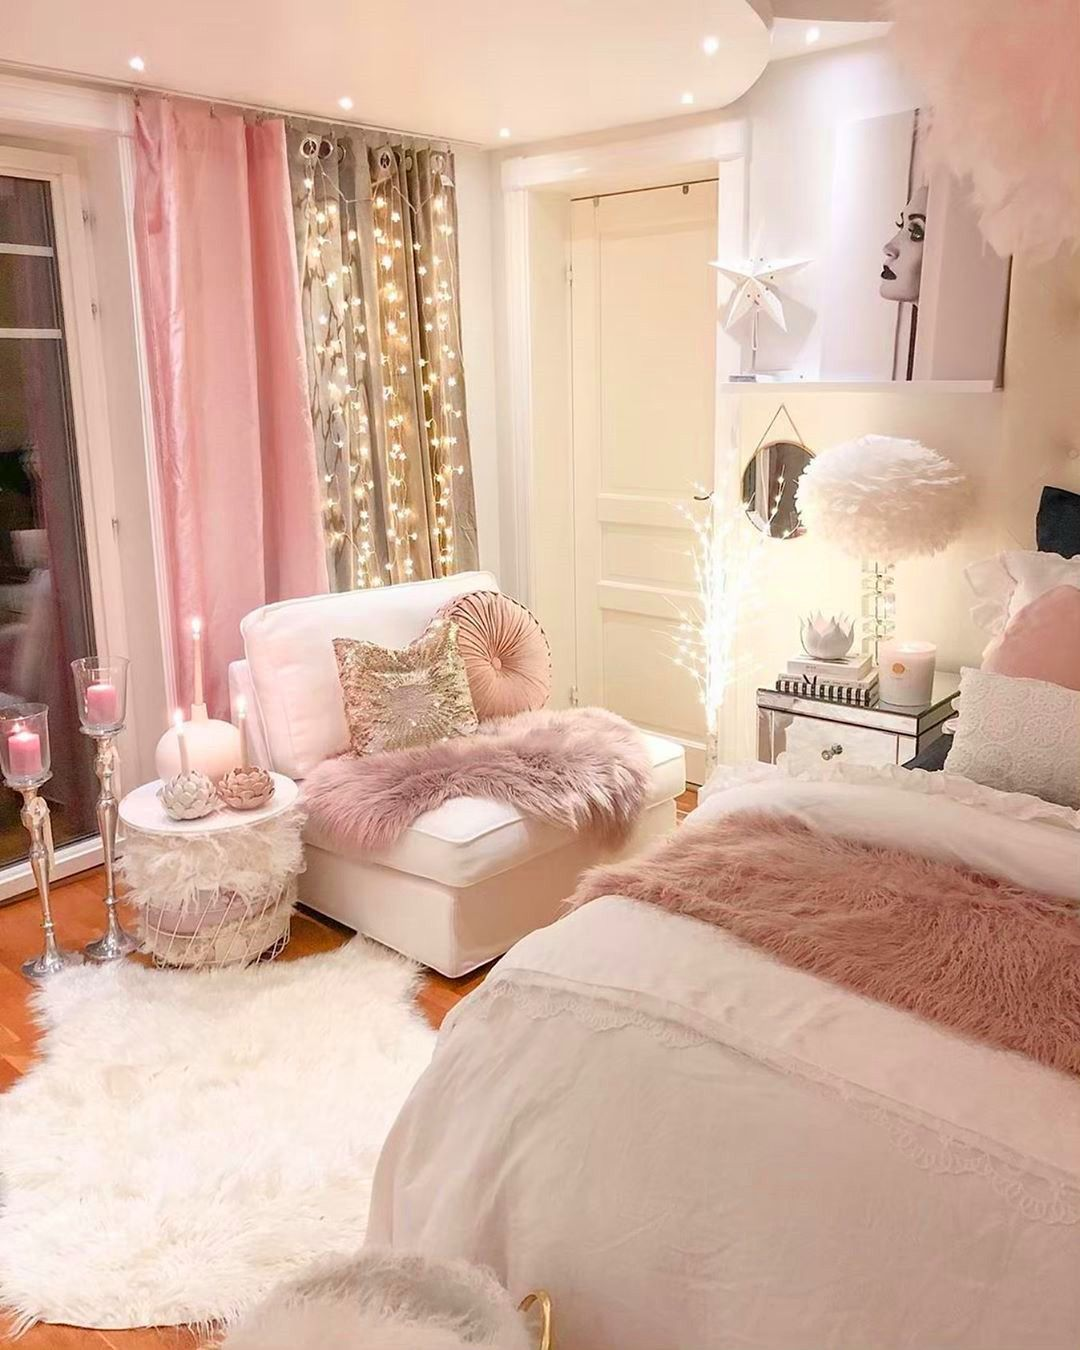 58 Inspiring Modern Bedroom Design Ideas In 2020 Girl Bedroom Decor Bedroom Decor Stylish Bedroom